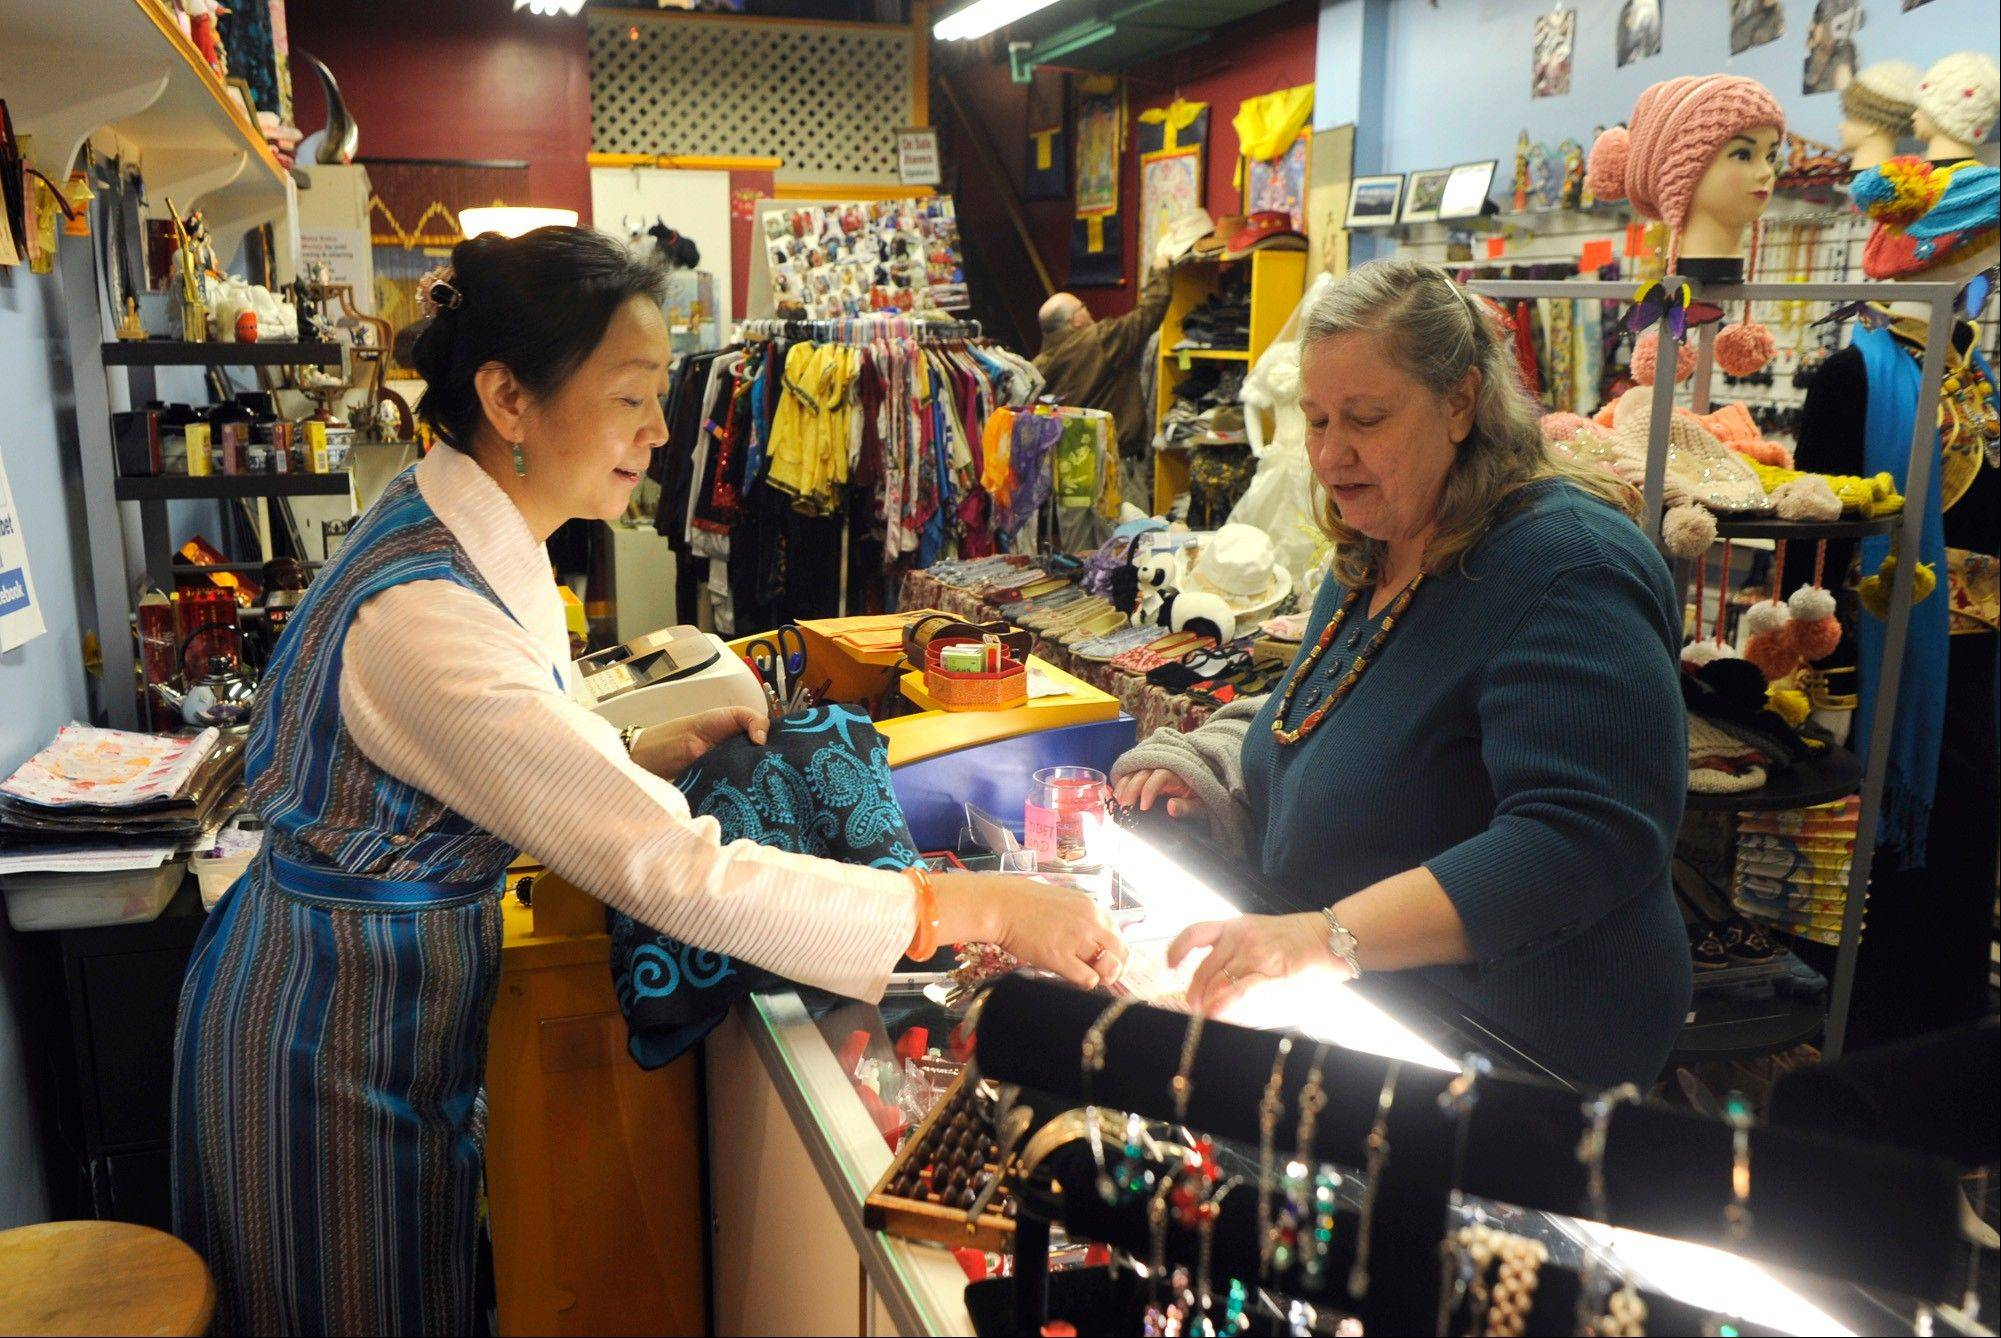 Ping's Tibet shop owner Ping Wu Longval, left, in Cotton Exchange shopping center, helps local costumer Sherry Rhodes with her shopping in Wilmington, N.C., as Rhodes is looking for ideas for wedding anniversary gifts for her husband.